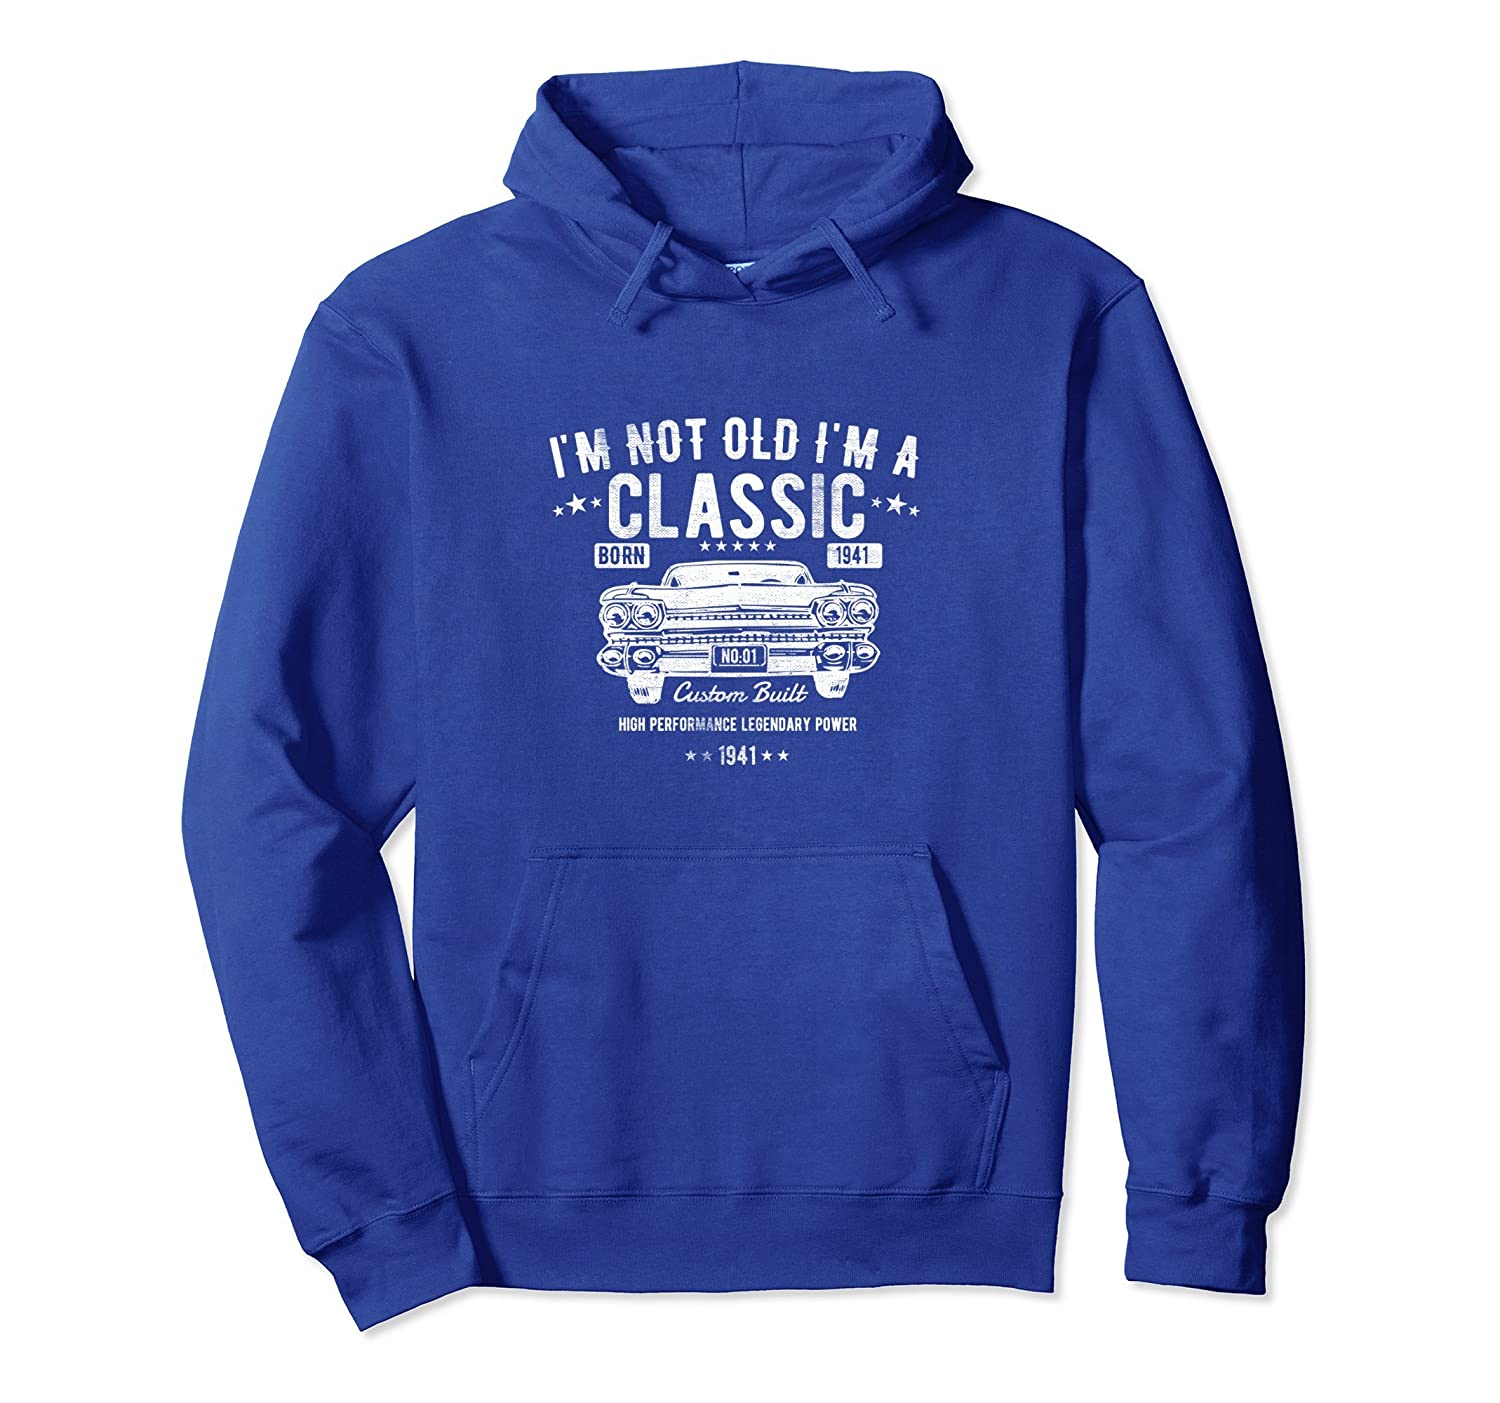 77th Birthday Hoodie I'm Not Old I'm a Classic 1941-alottee gift